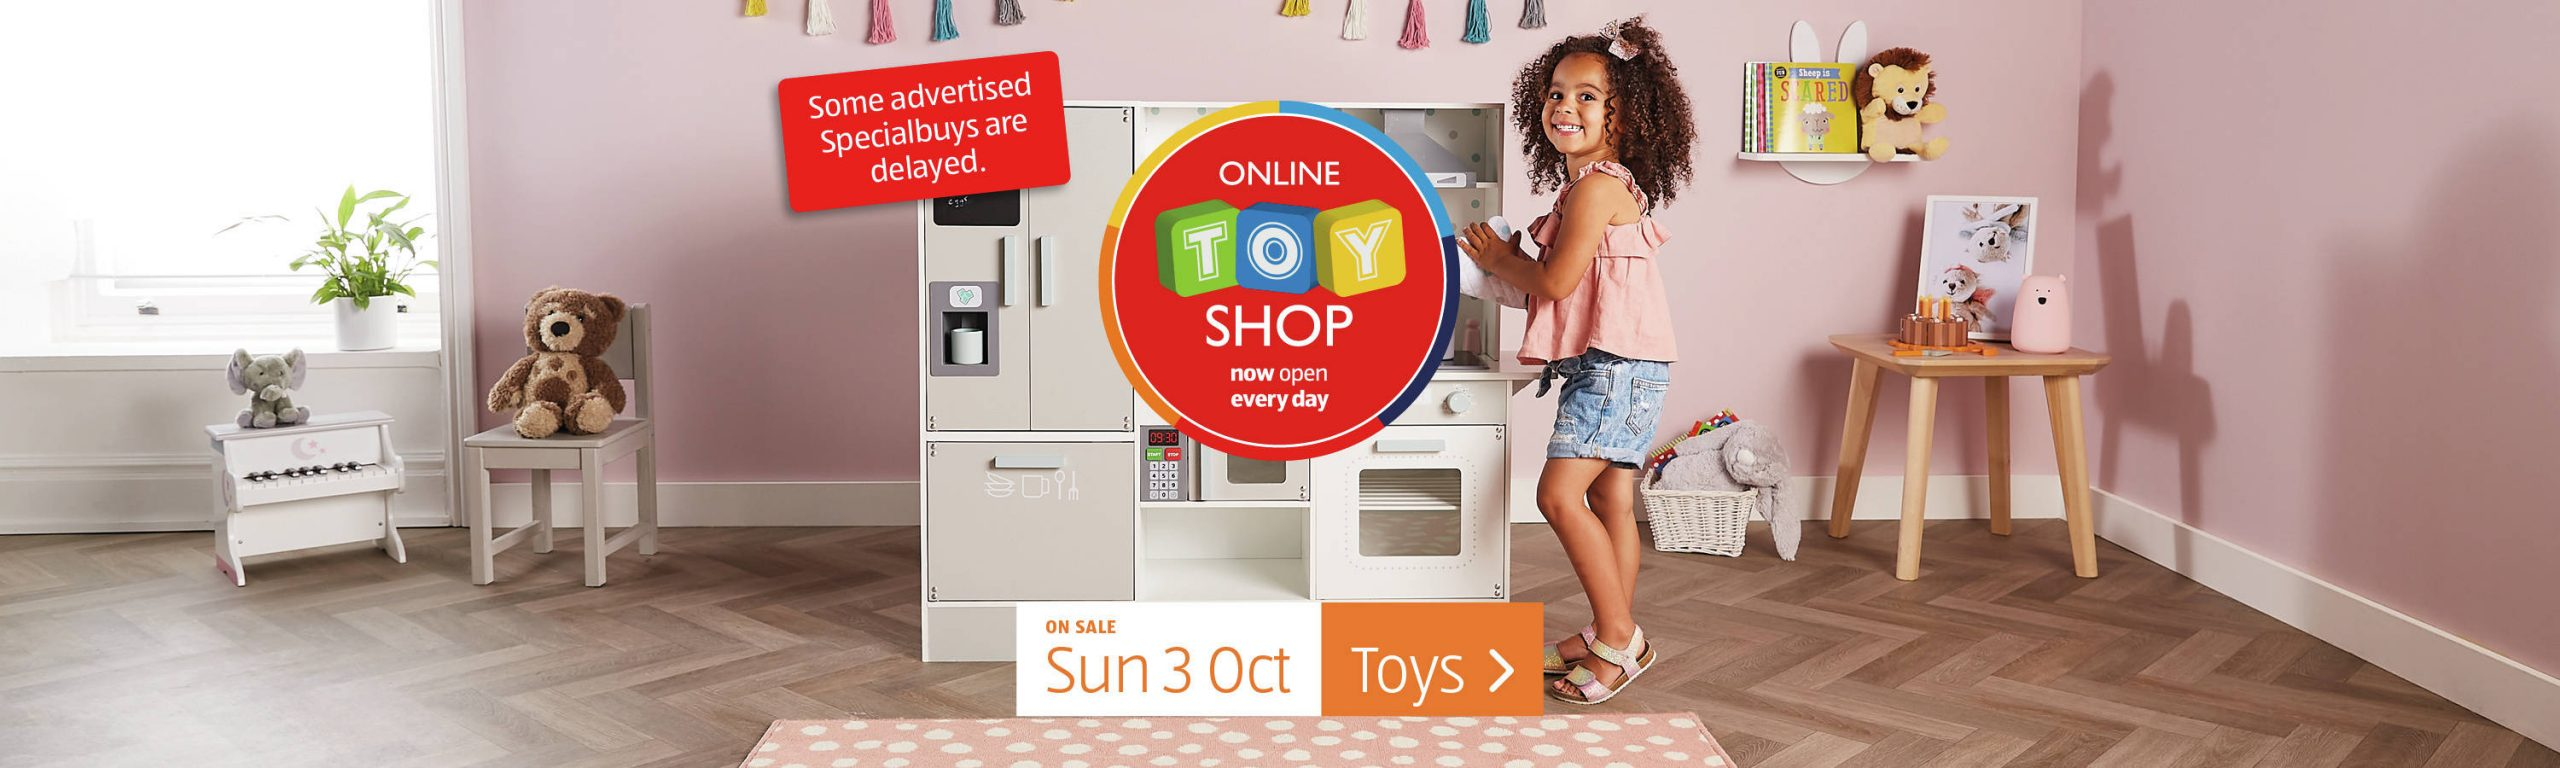 Aldi Special Buys Sunday, 26th September 2021 Toys